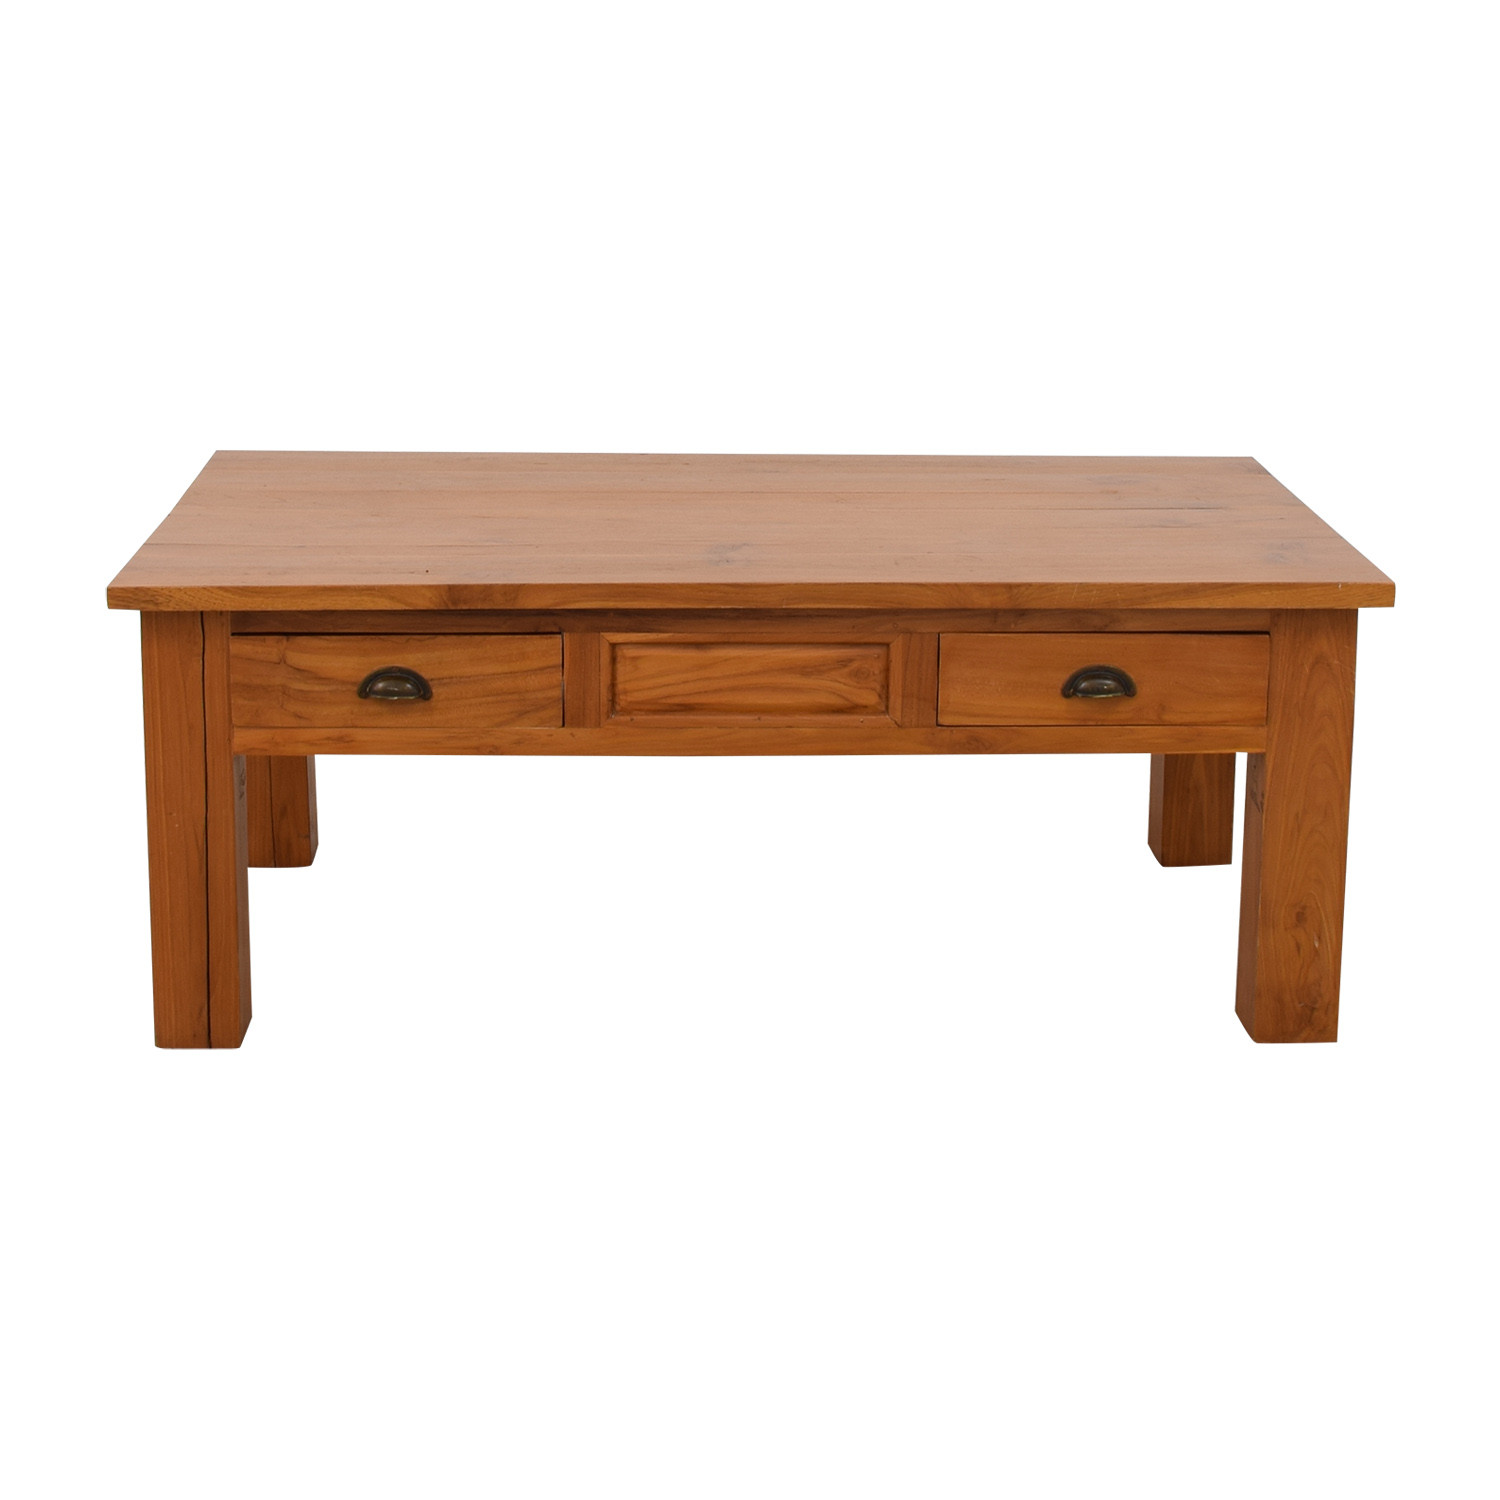 Best ideas about Coffee Table For Sale . Save or Pin Coffee Tables Used Coffee Tables for sale Now.